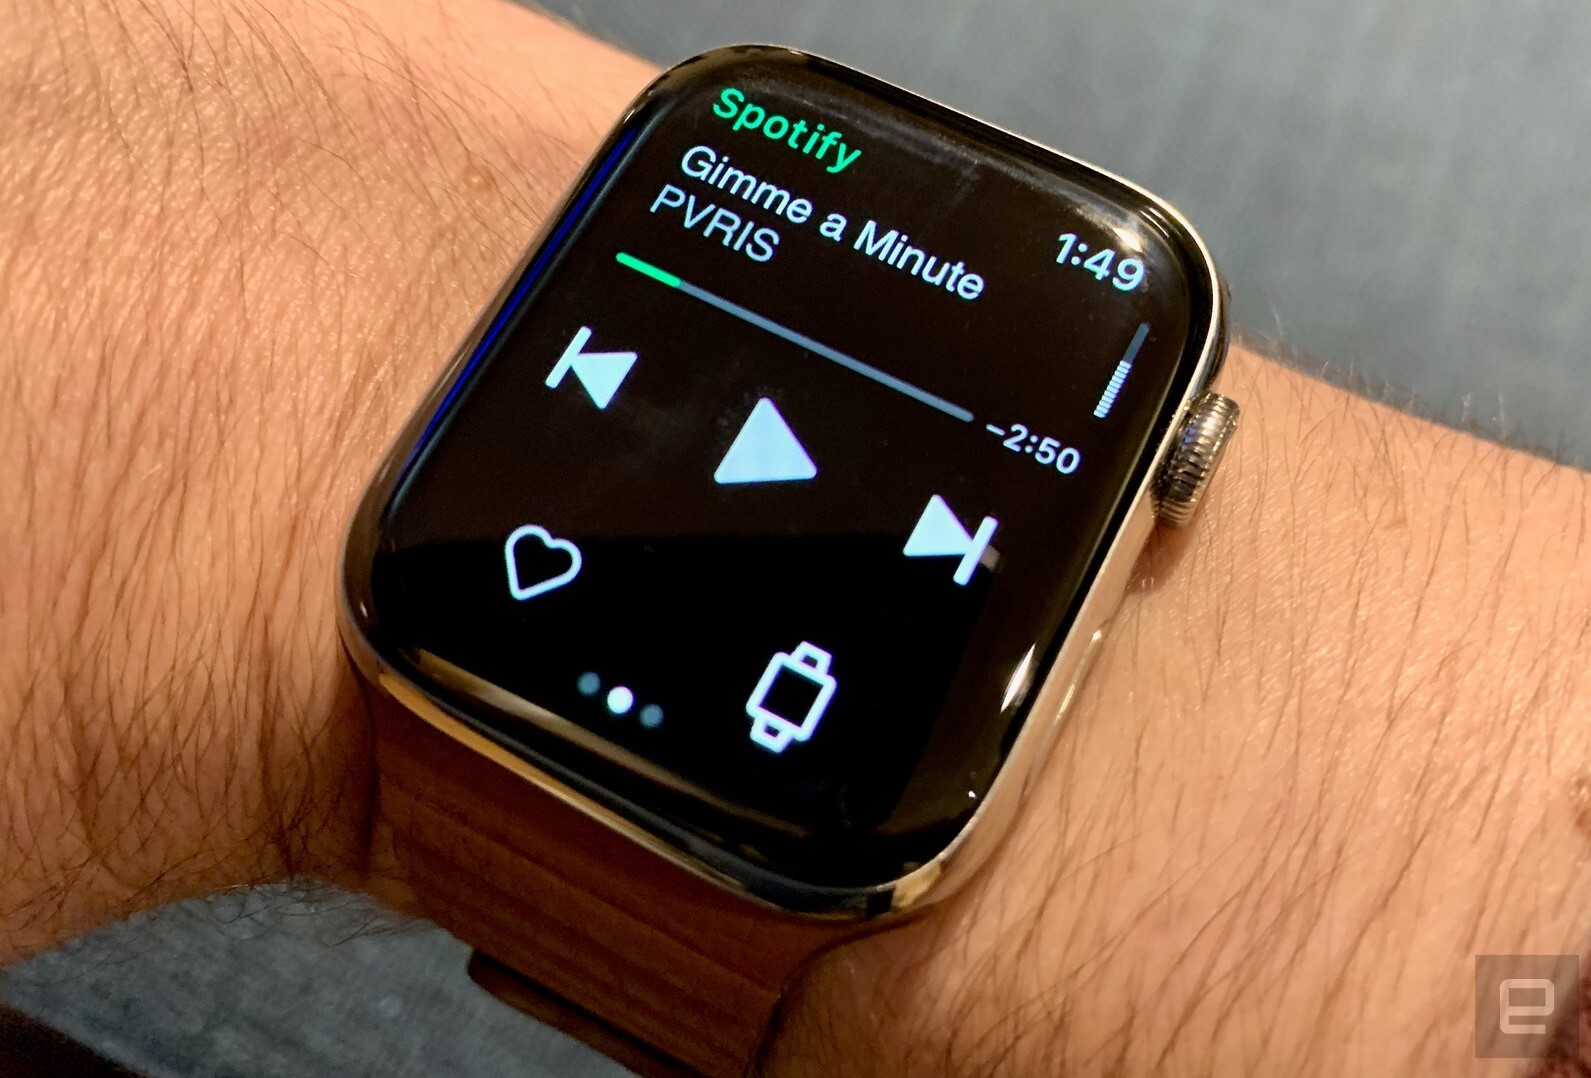 Spotify now works on the Apple Watch, no phone required